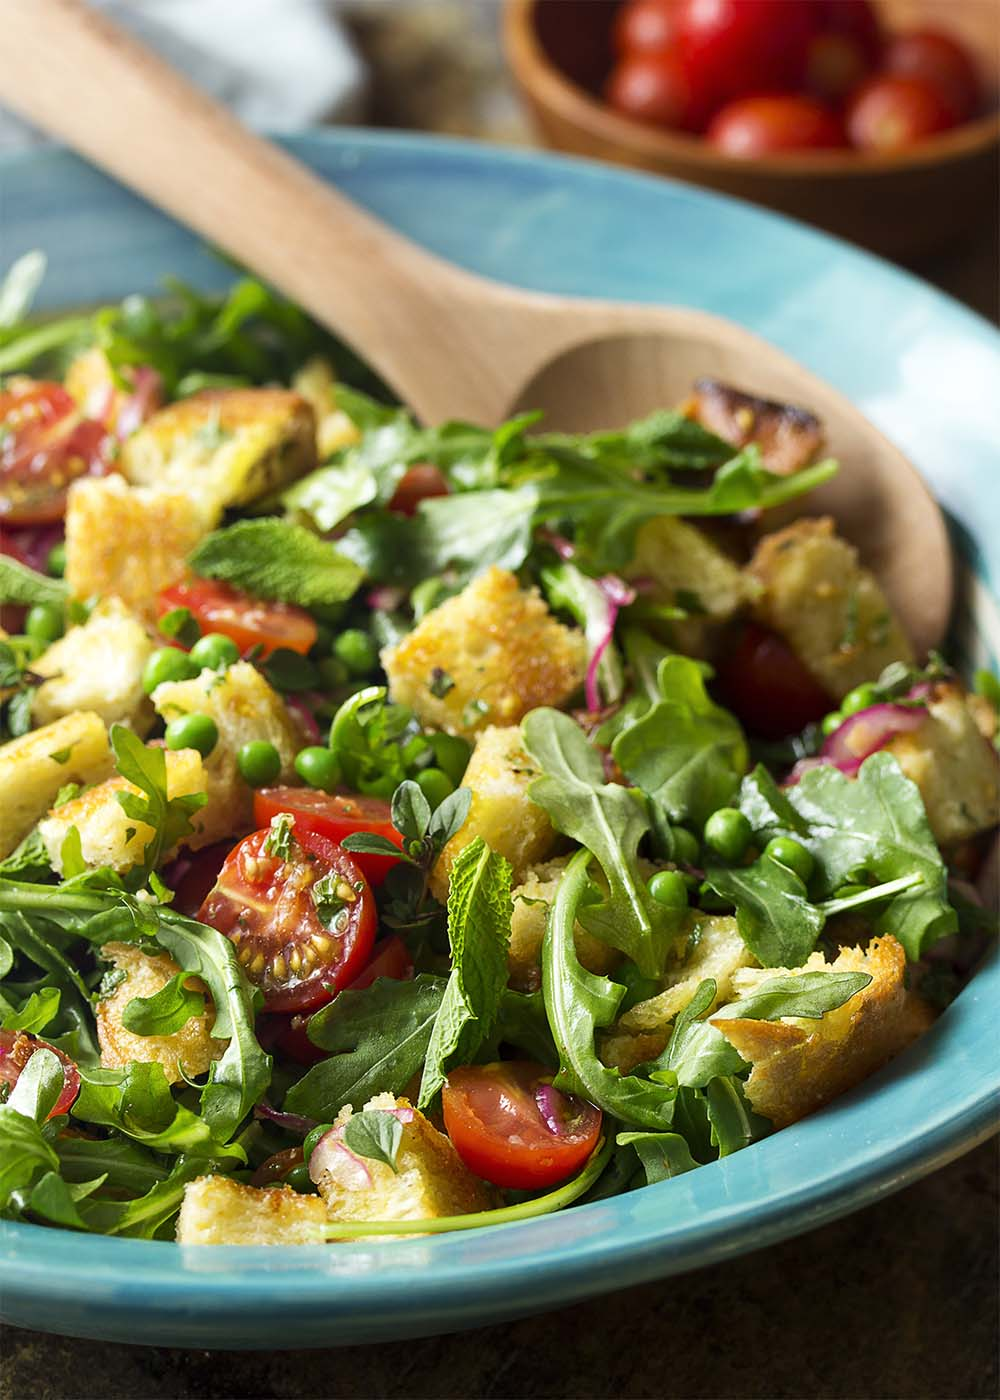 A serving bowl of salad full of toasted bread, arugula, tomatoes, peas, and mint.